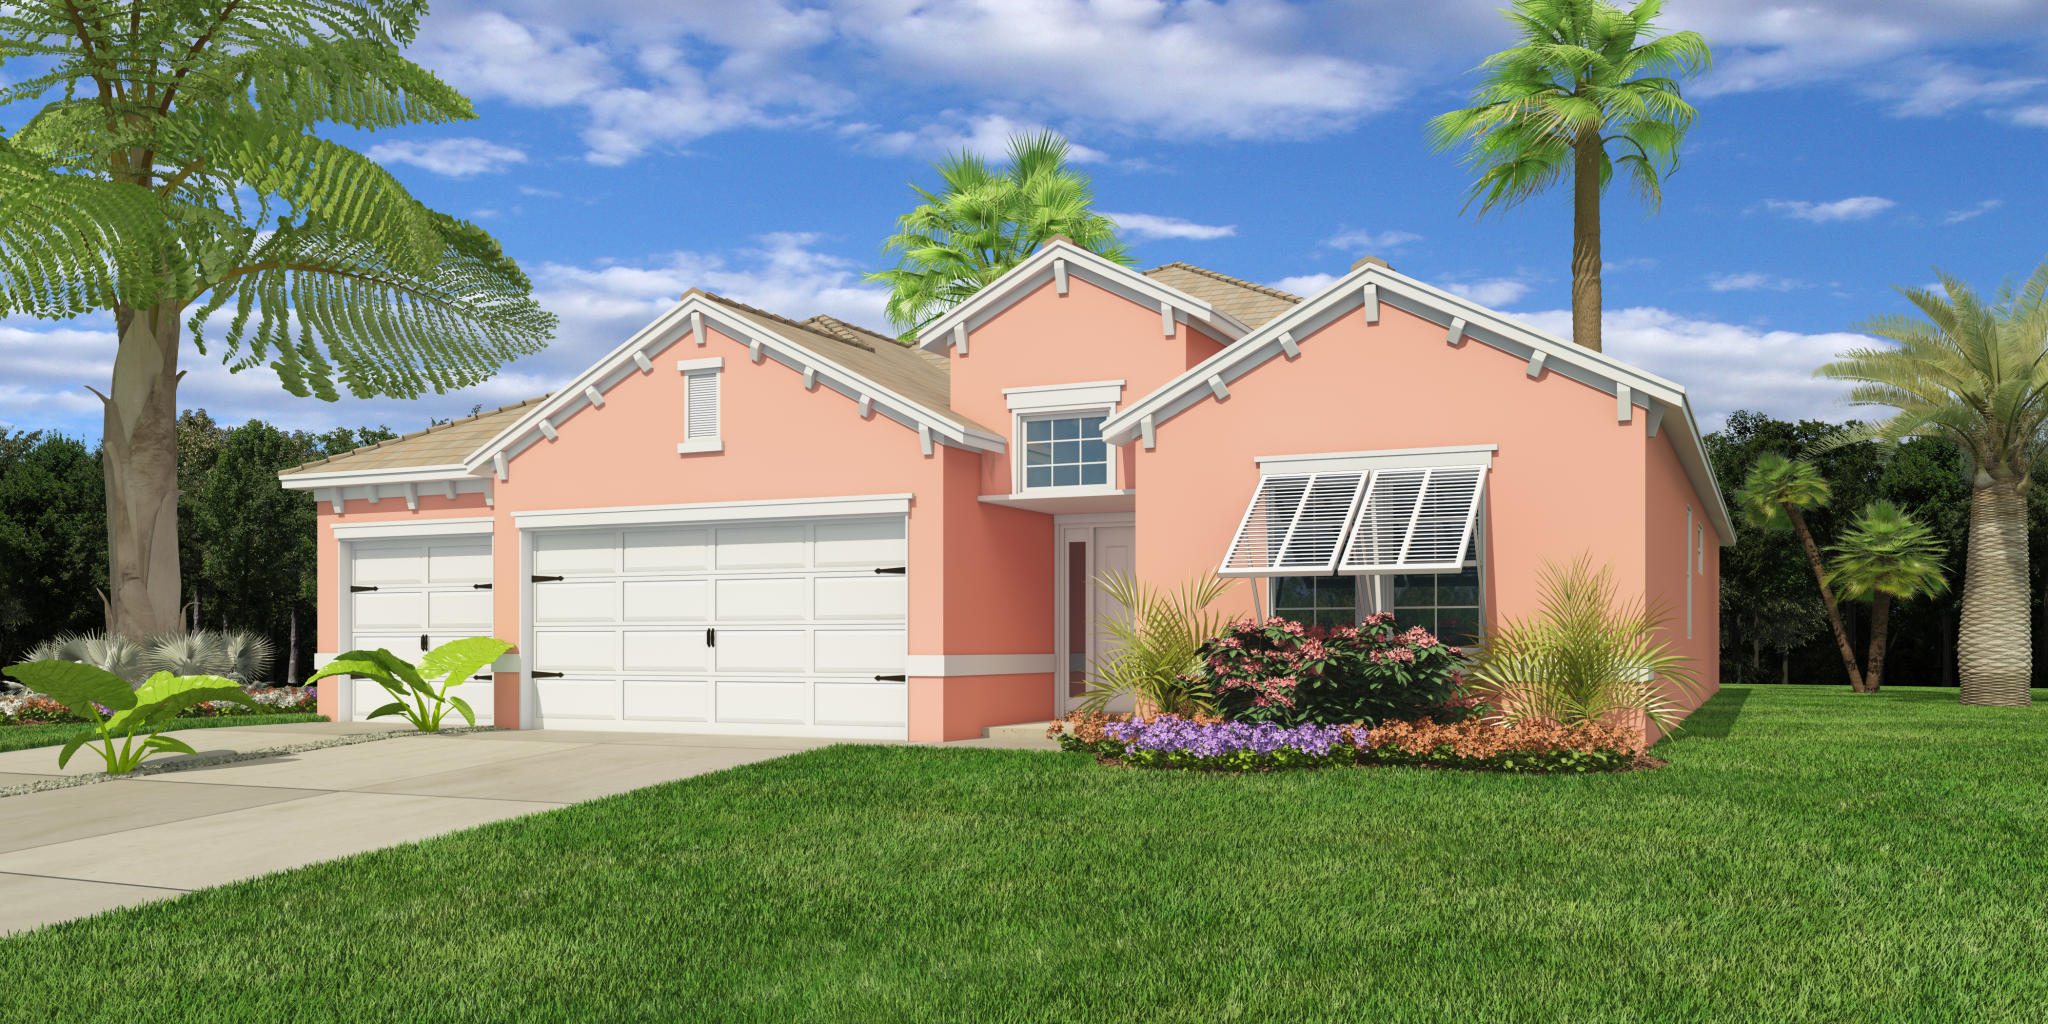 Admirable Red Bud Plan Vero Beach Fl 32967 4 Bed 3 Bath Single Family Home 4 Photos Trulia Download Free Architecture Designs Rallybritishbridgeorg